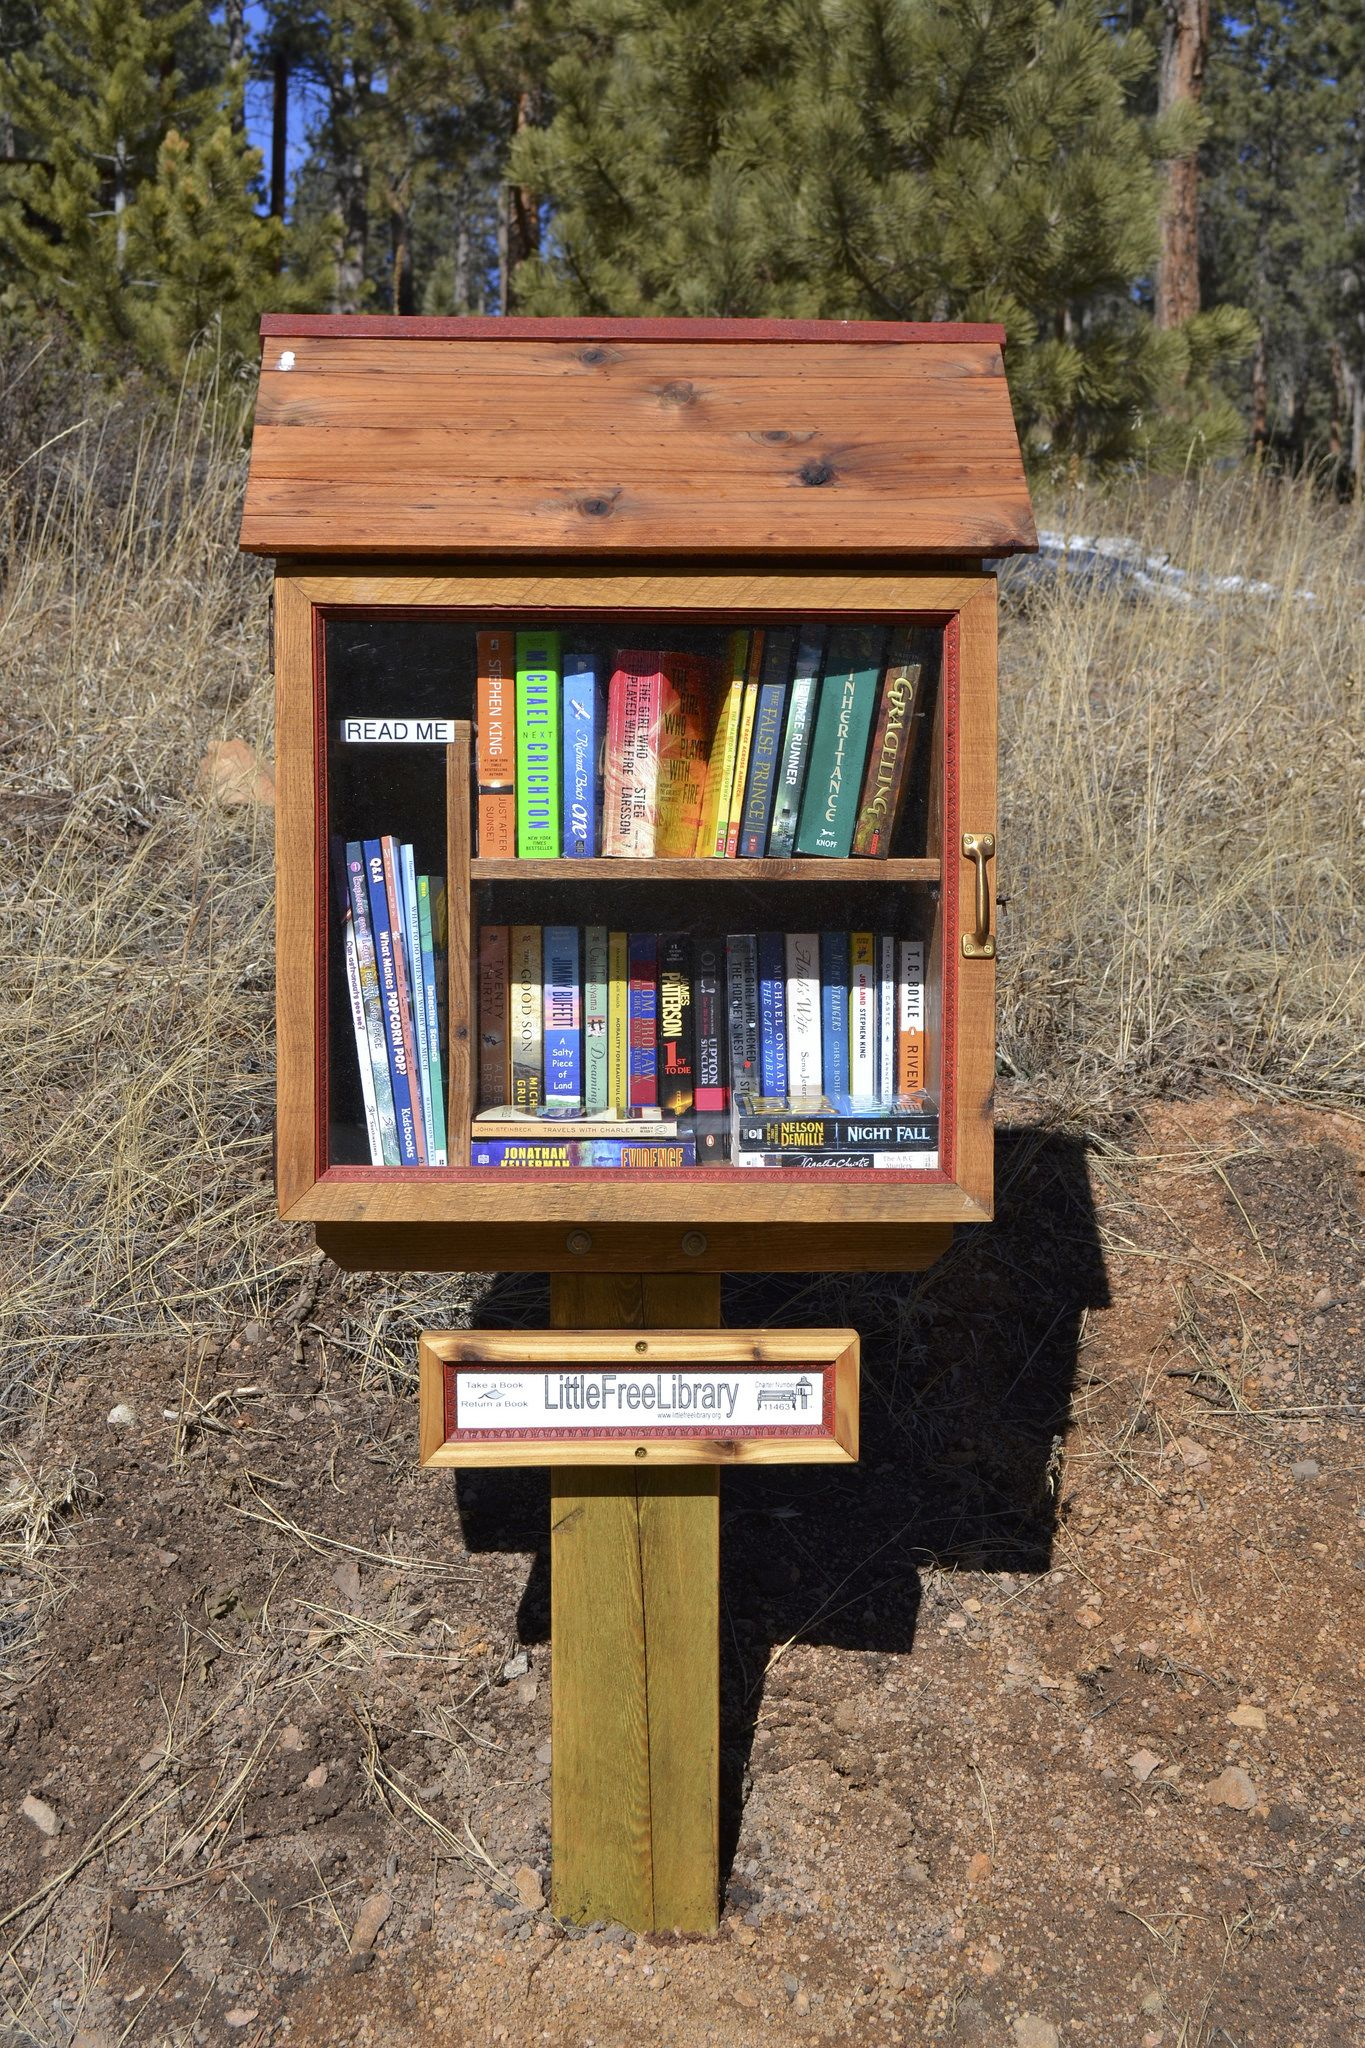 Little free library made out of a pallet. Little free